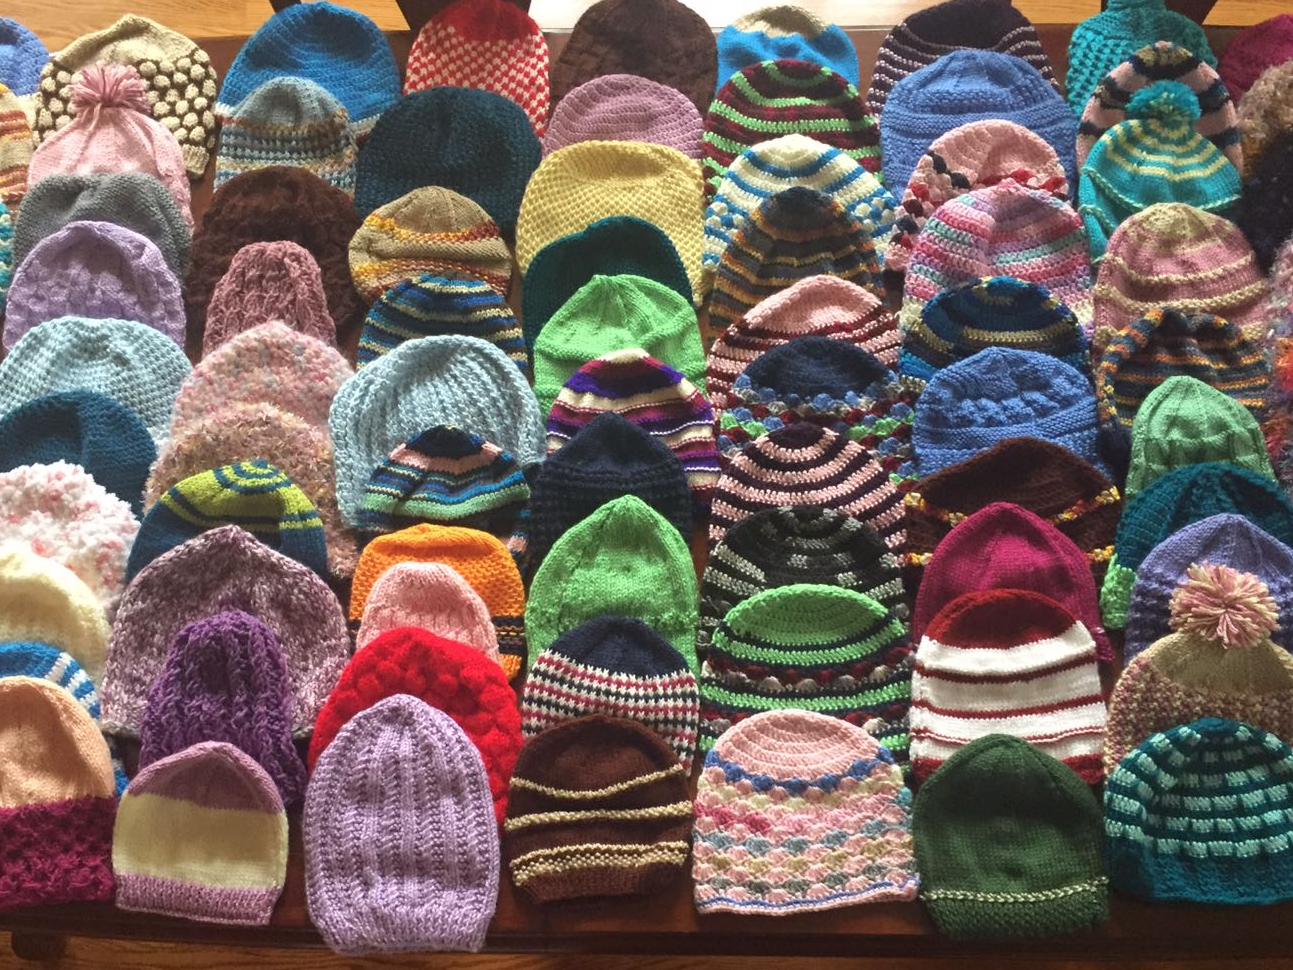 Spread warmth with hand-knit Chemo Caps and Blankets made with 100 % acrylic yarn